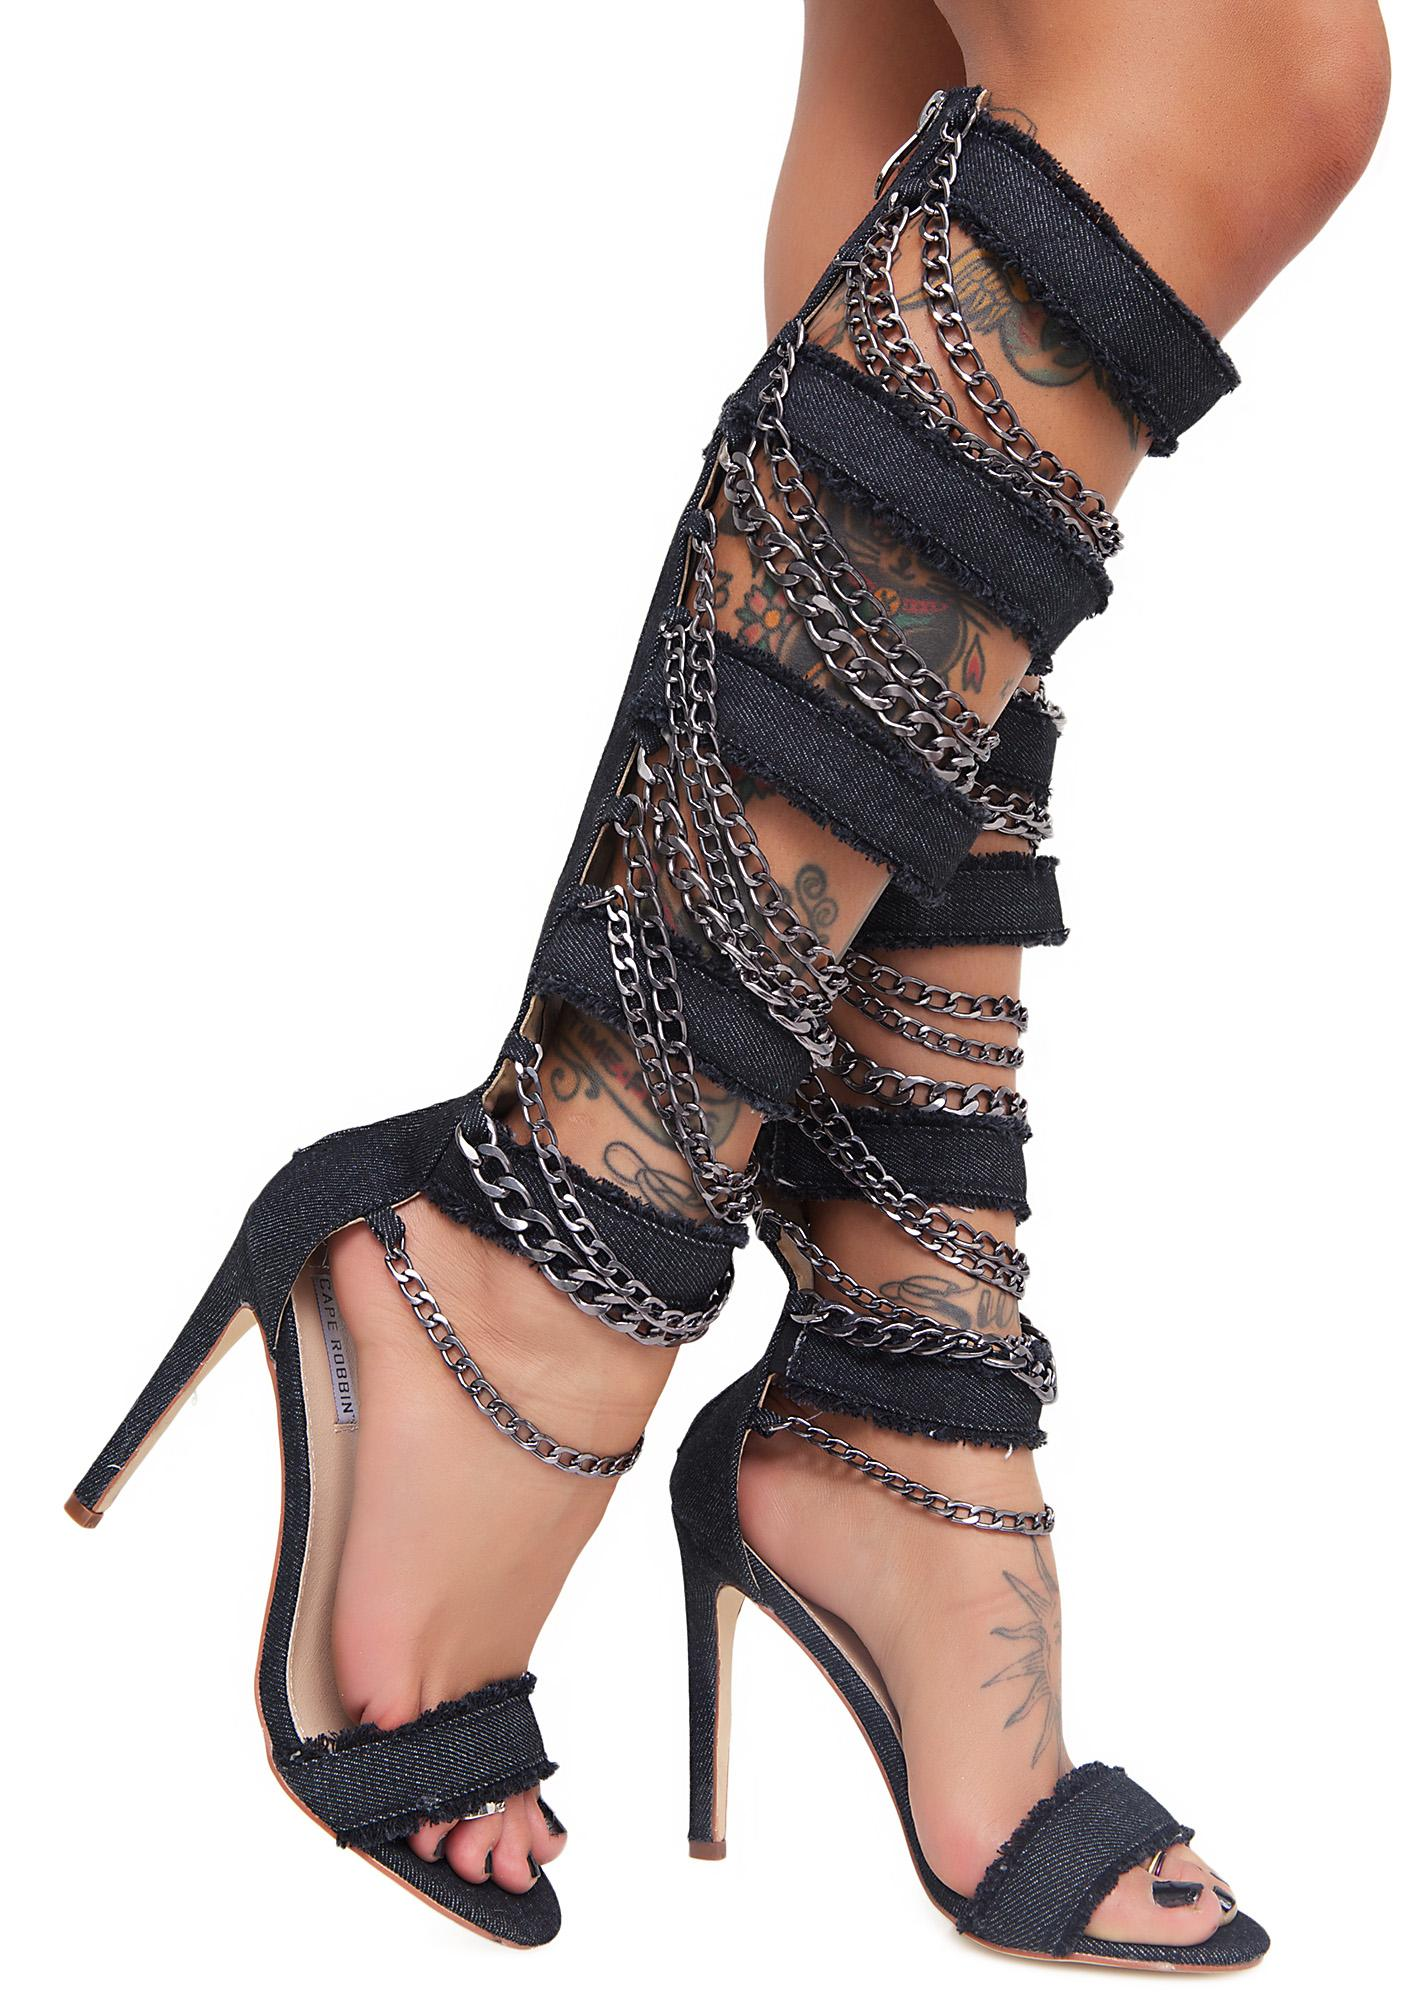 Ego Boost Strappy Knee High Heels